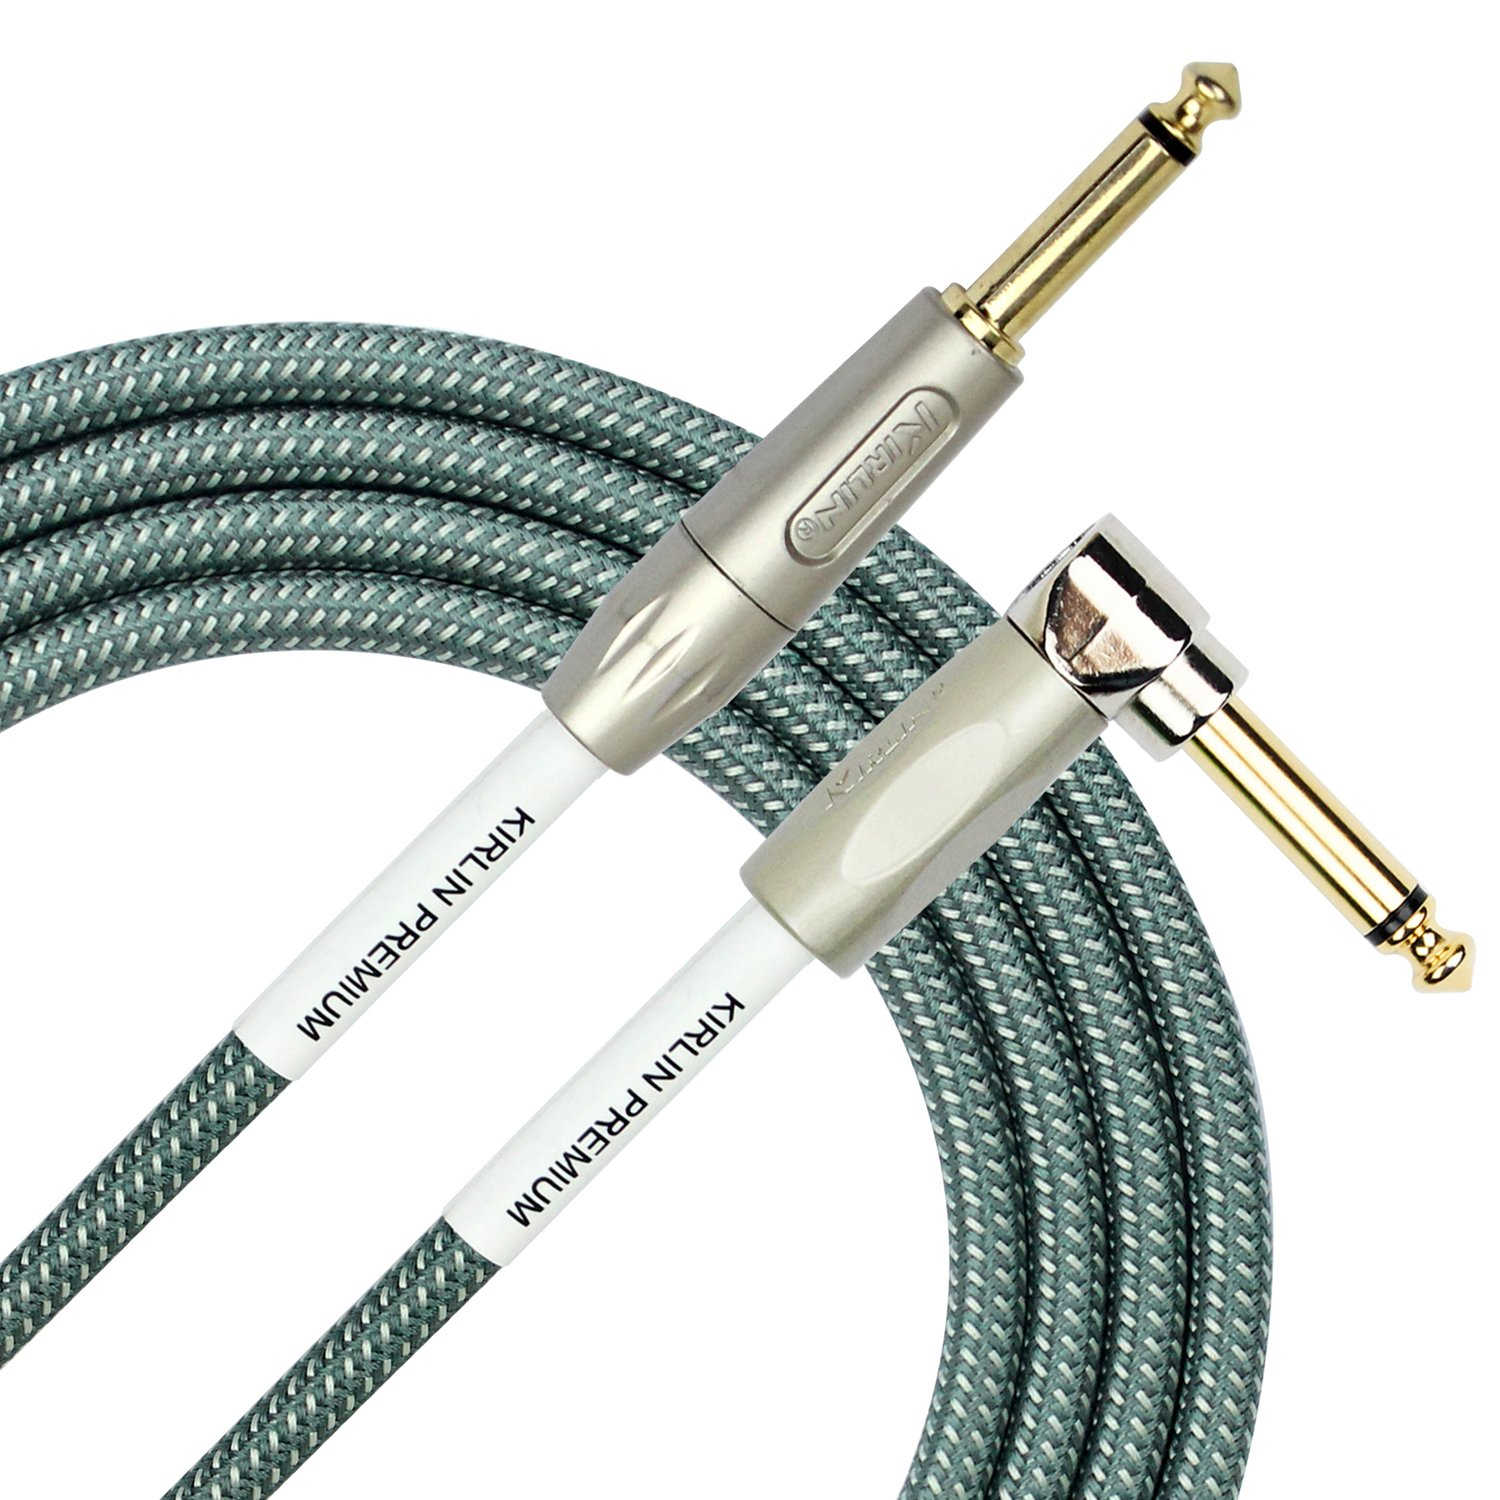 Kirlin Cable IWB-202PFGL-10/OL -10 feet- Straight to Right Angle 1/4-Inch Plug Premium Plus Instrument Cable, Olive Green Tweed Woven Jacket KIRLIN INDUSTRIES INC.